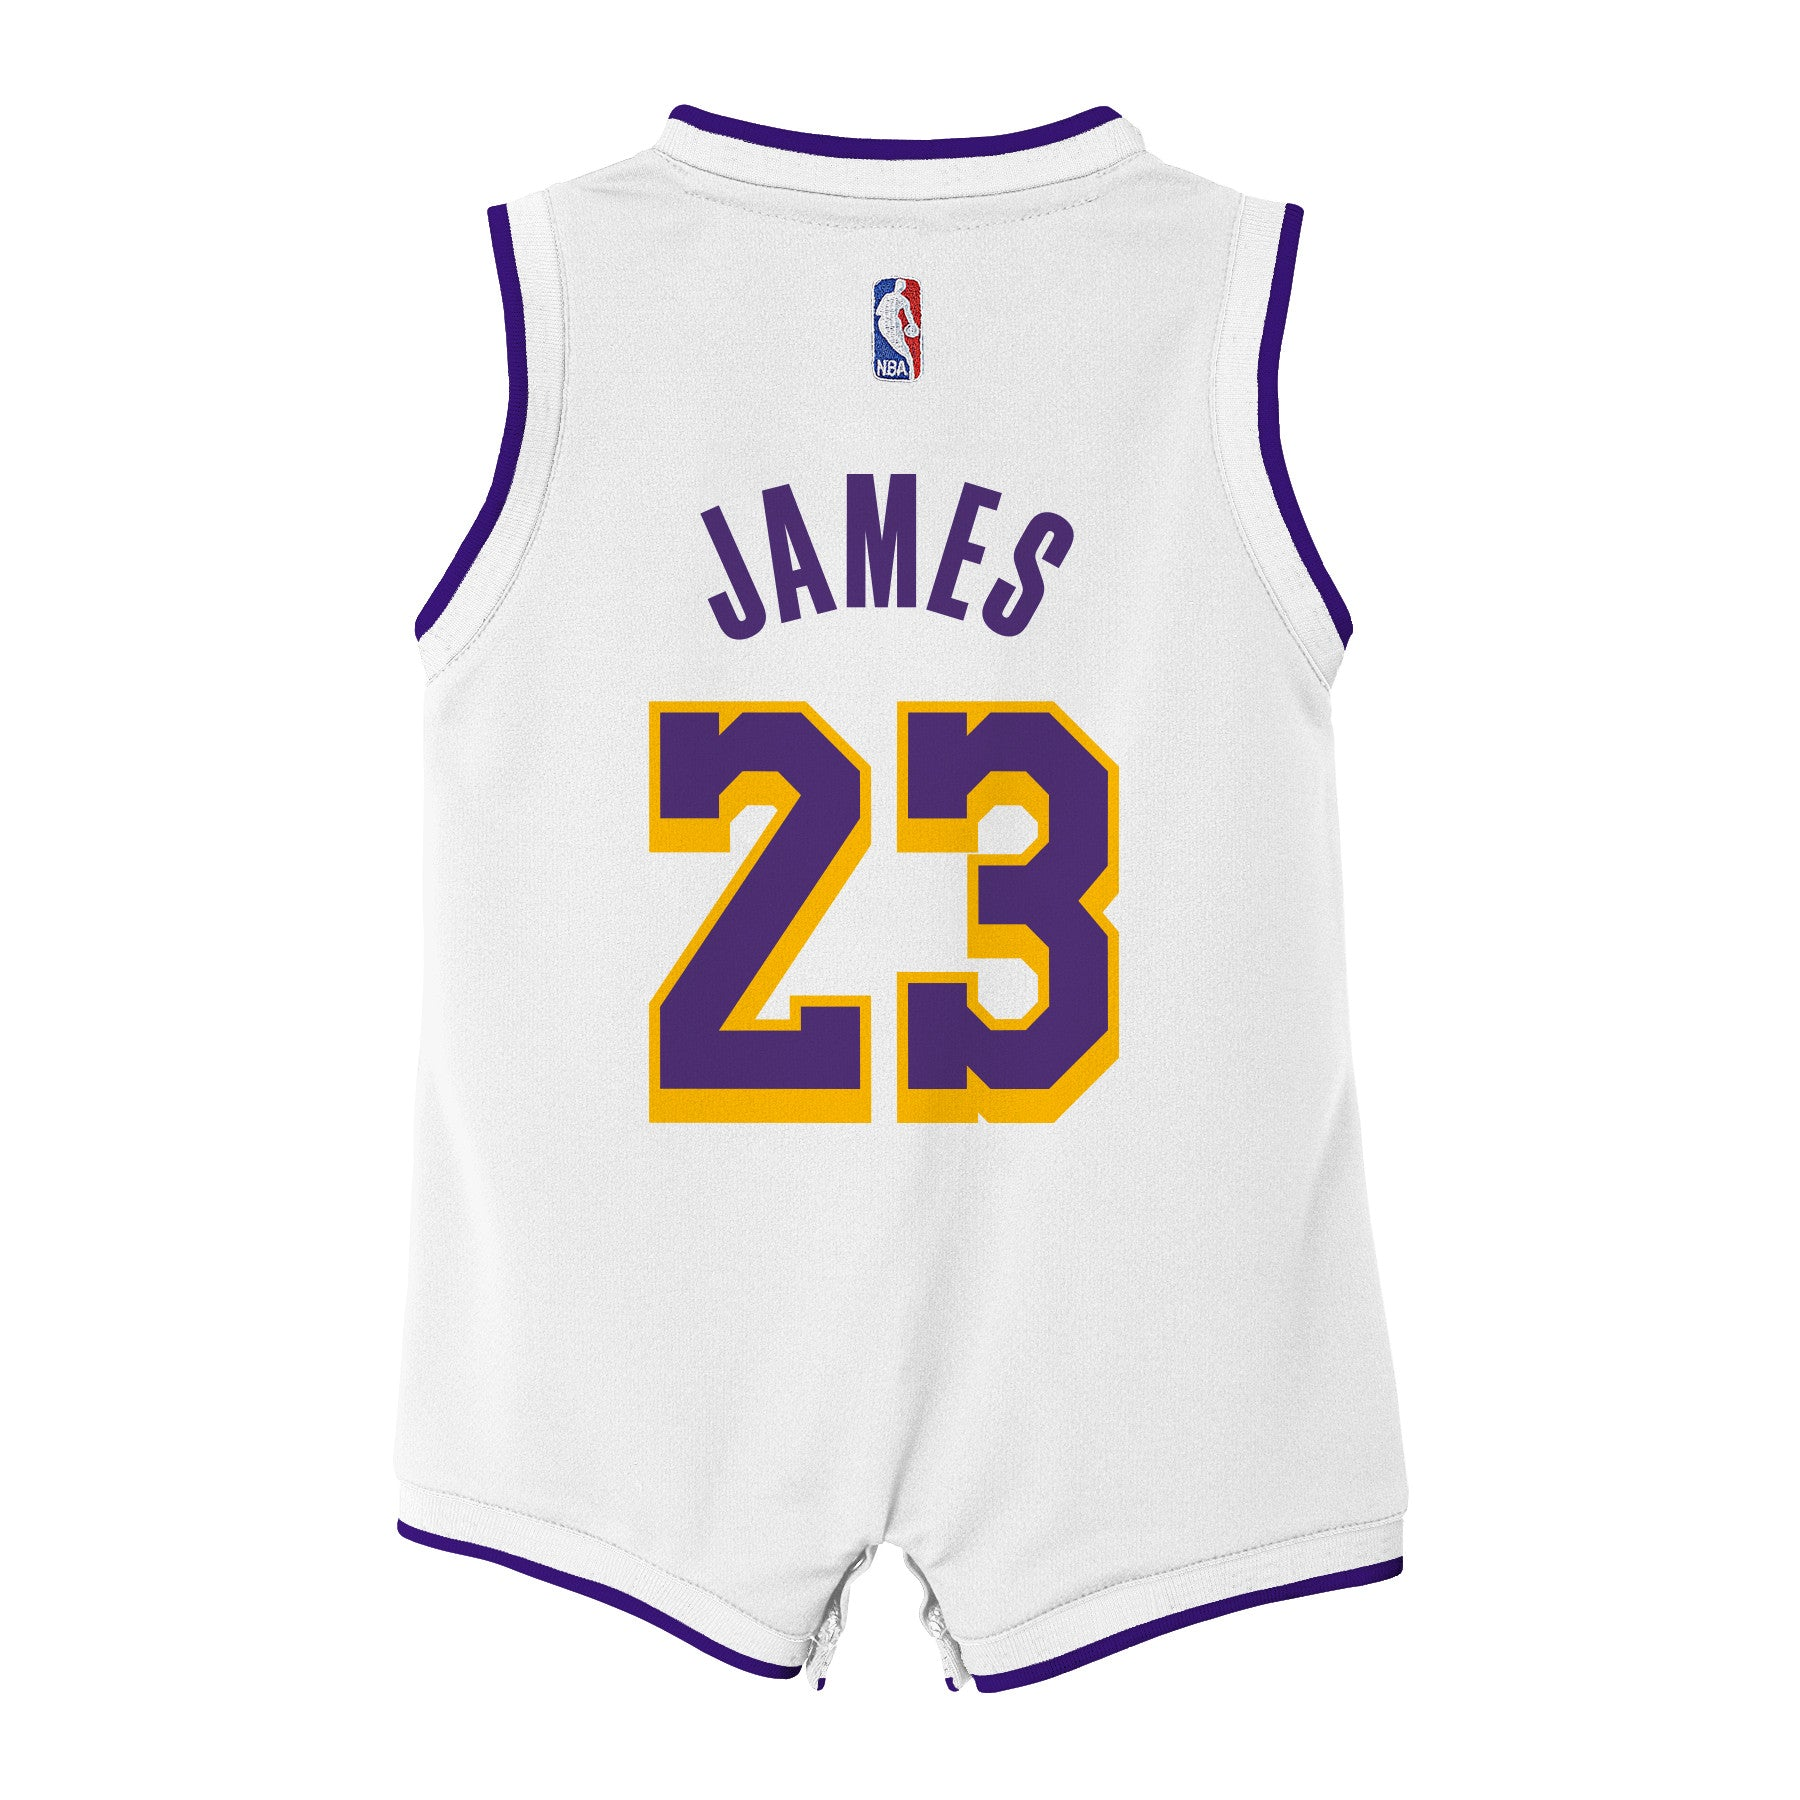 lebron infant jersey Off 59% - www.bashhguidelines.org